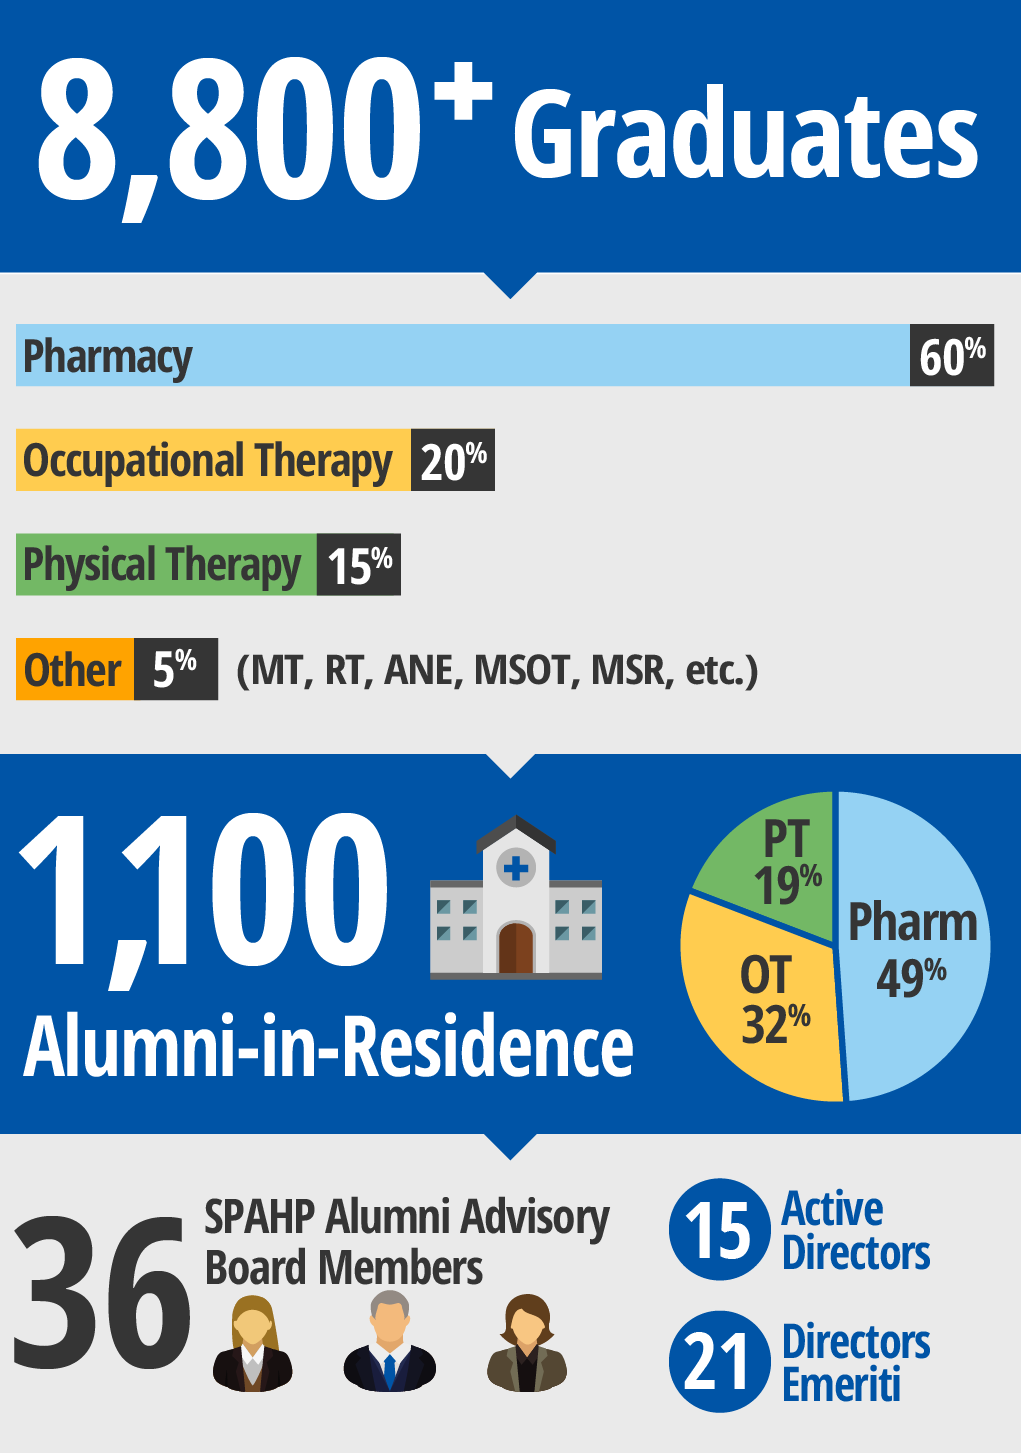 Phamacy & Health Professionals Alumni By the Numbers - 8800+ graduates; 1100 alumni in residence.